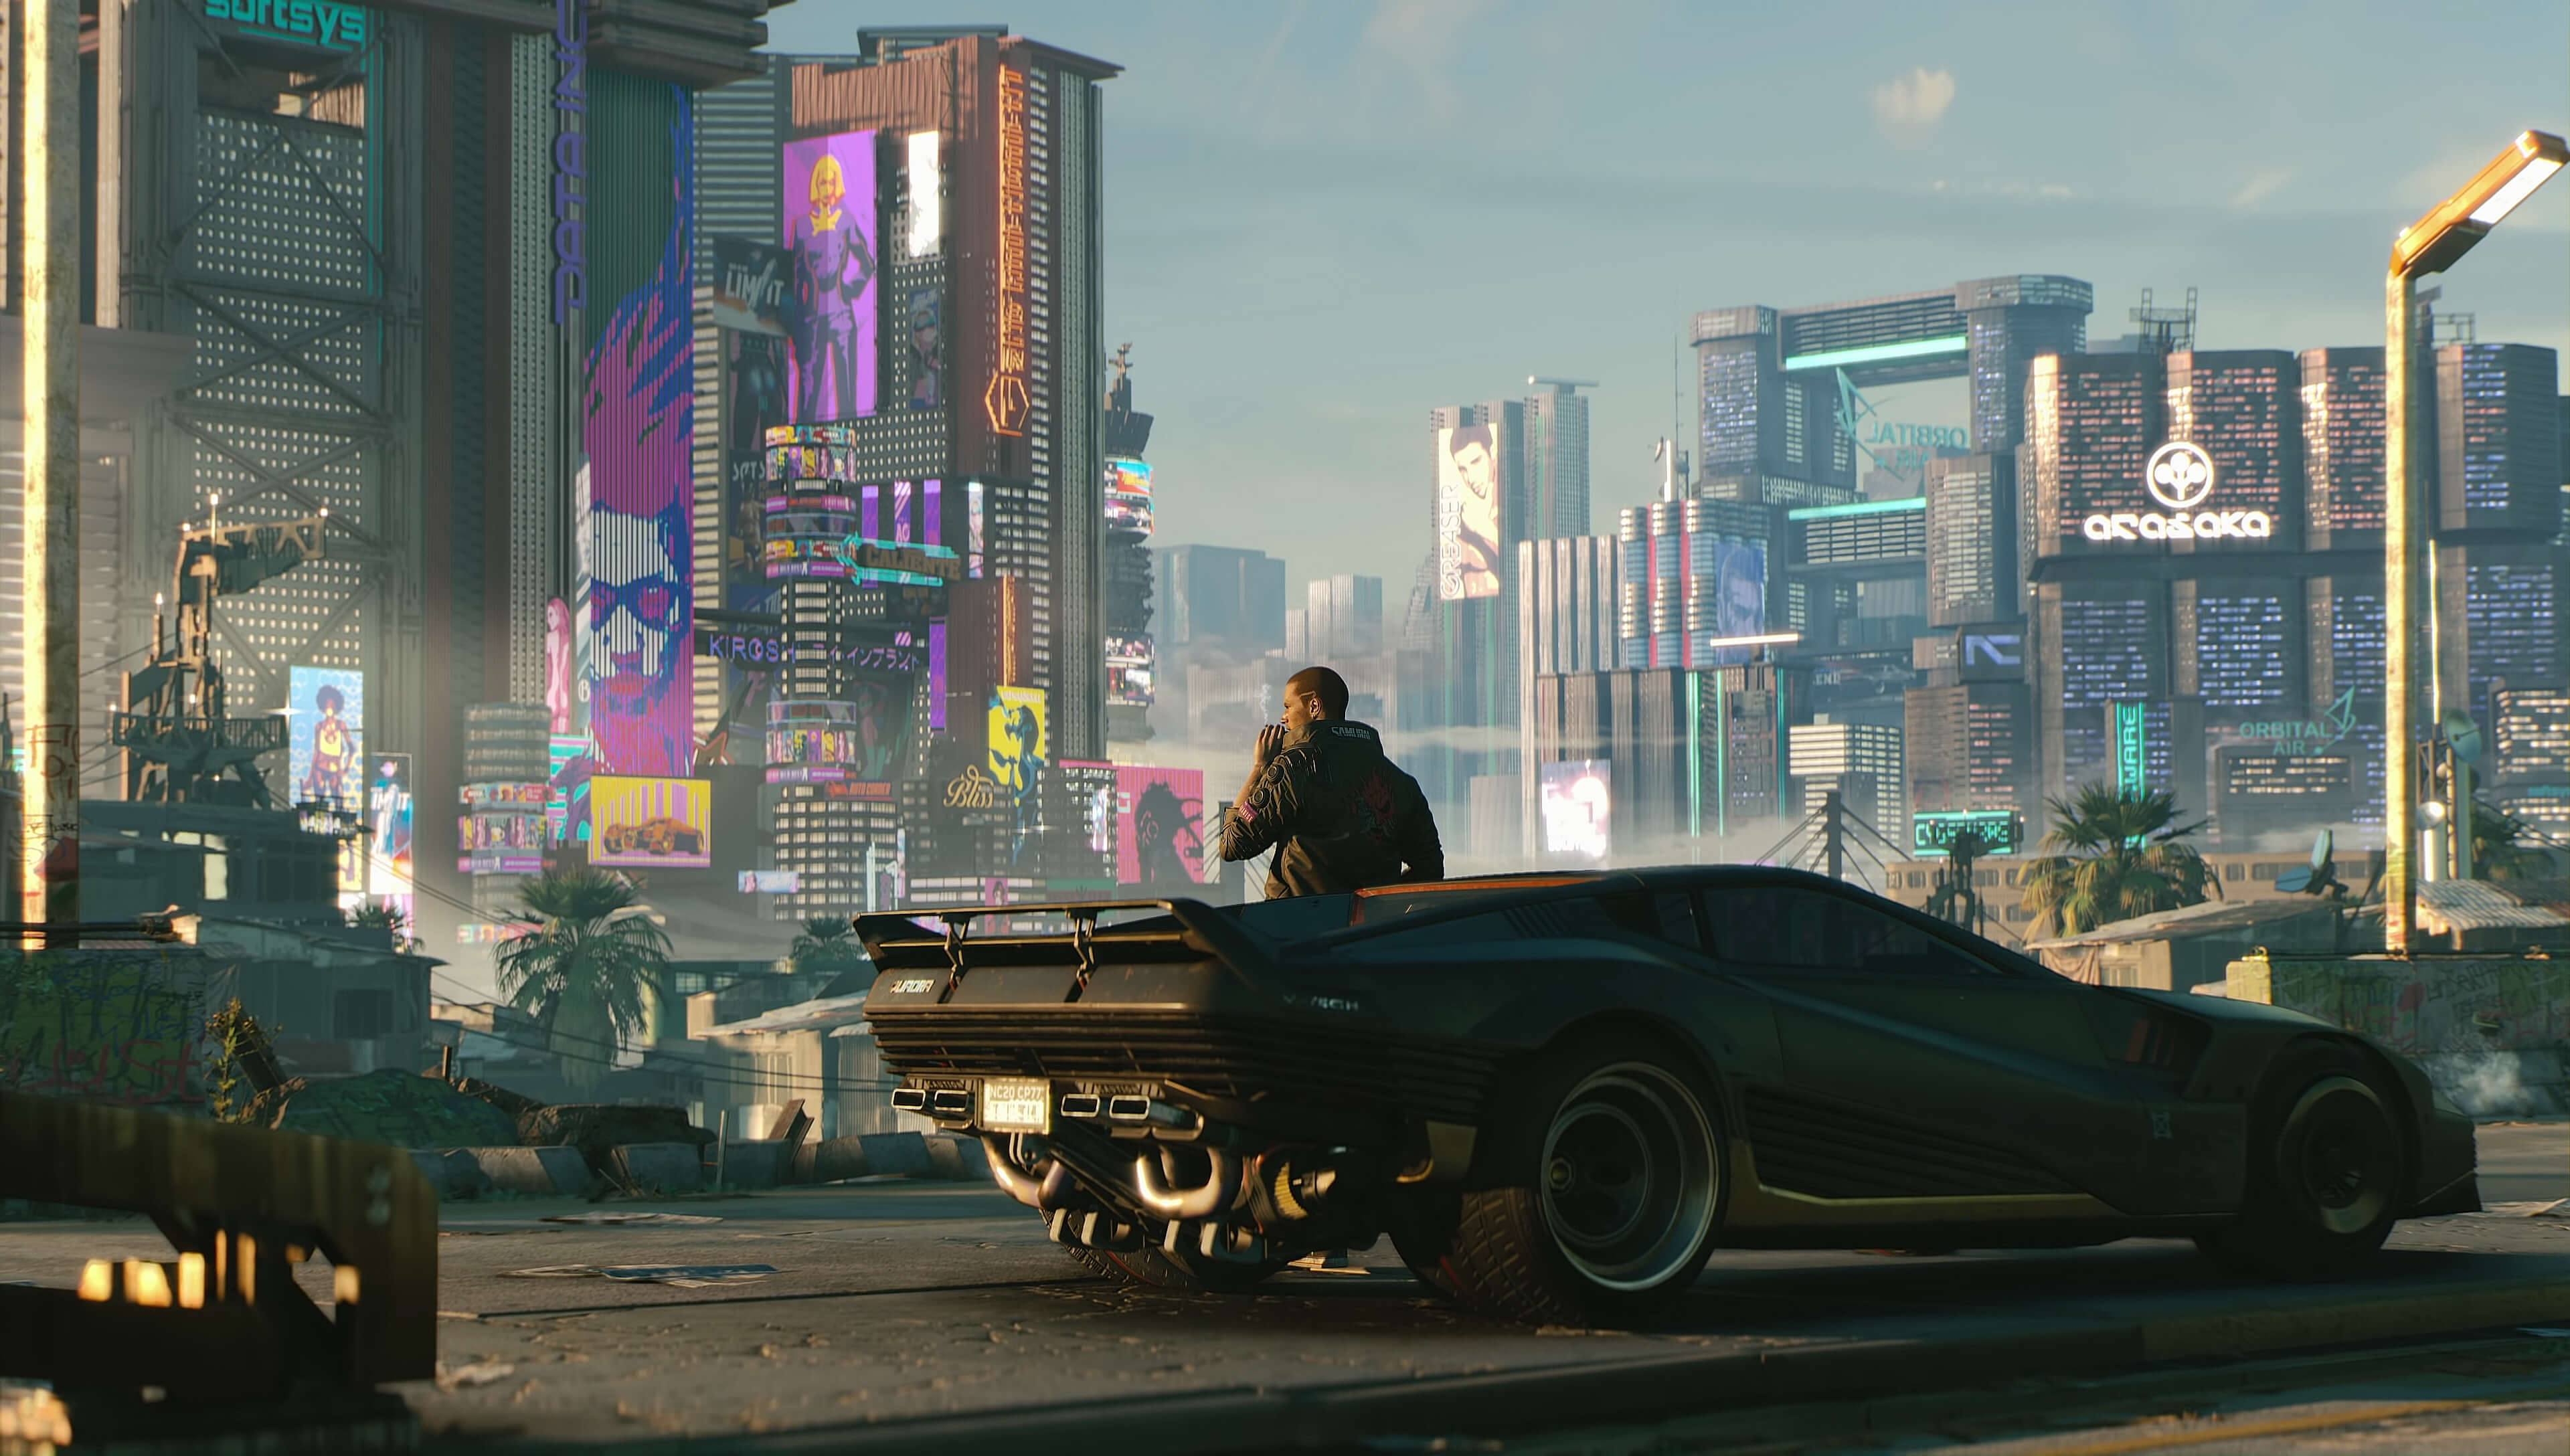 Cyberpunk 2077 previewed at Gamescom, and the game sounds awesome